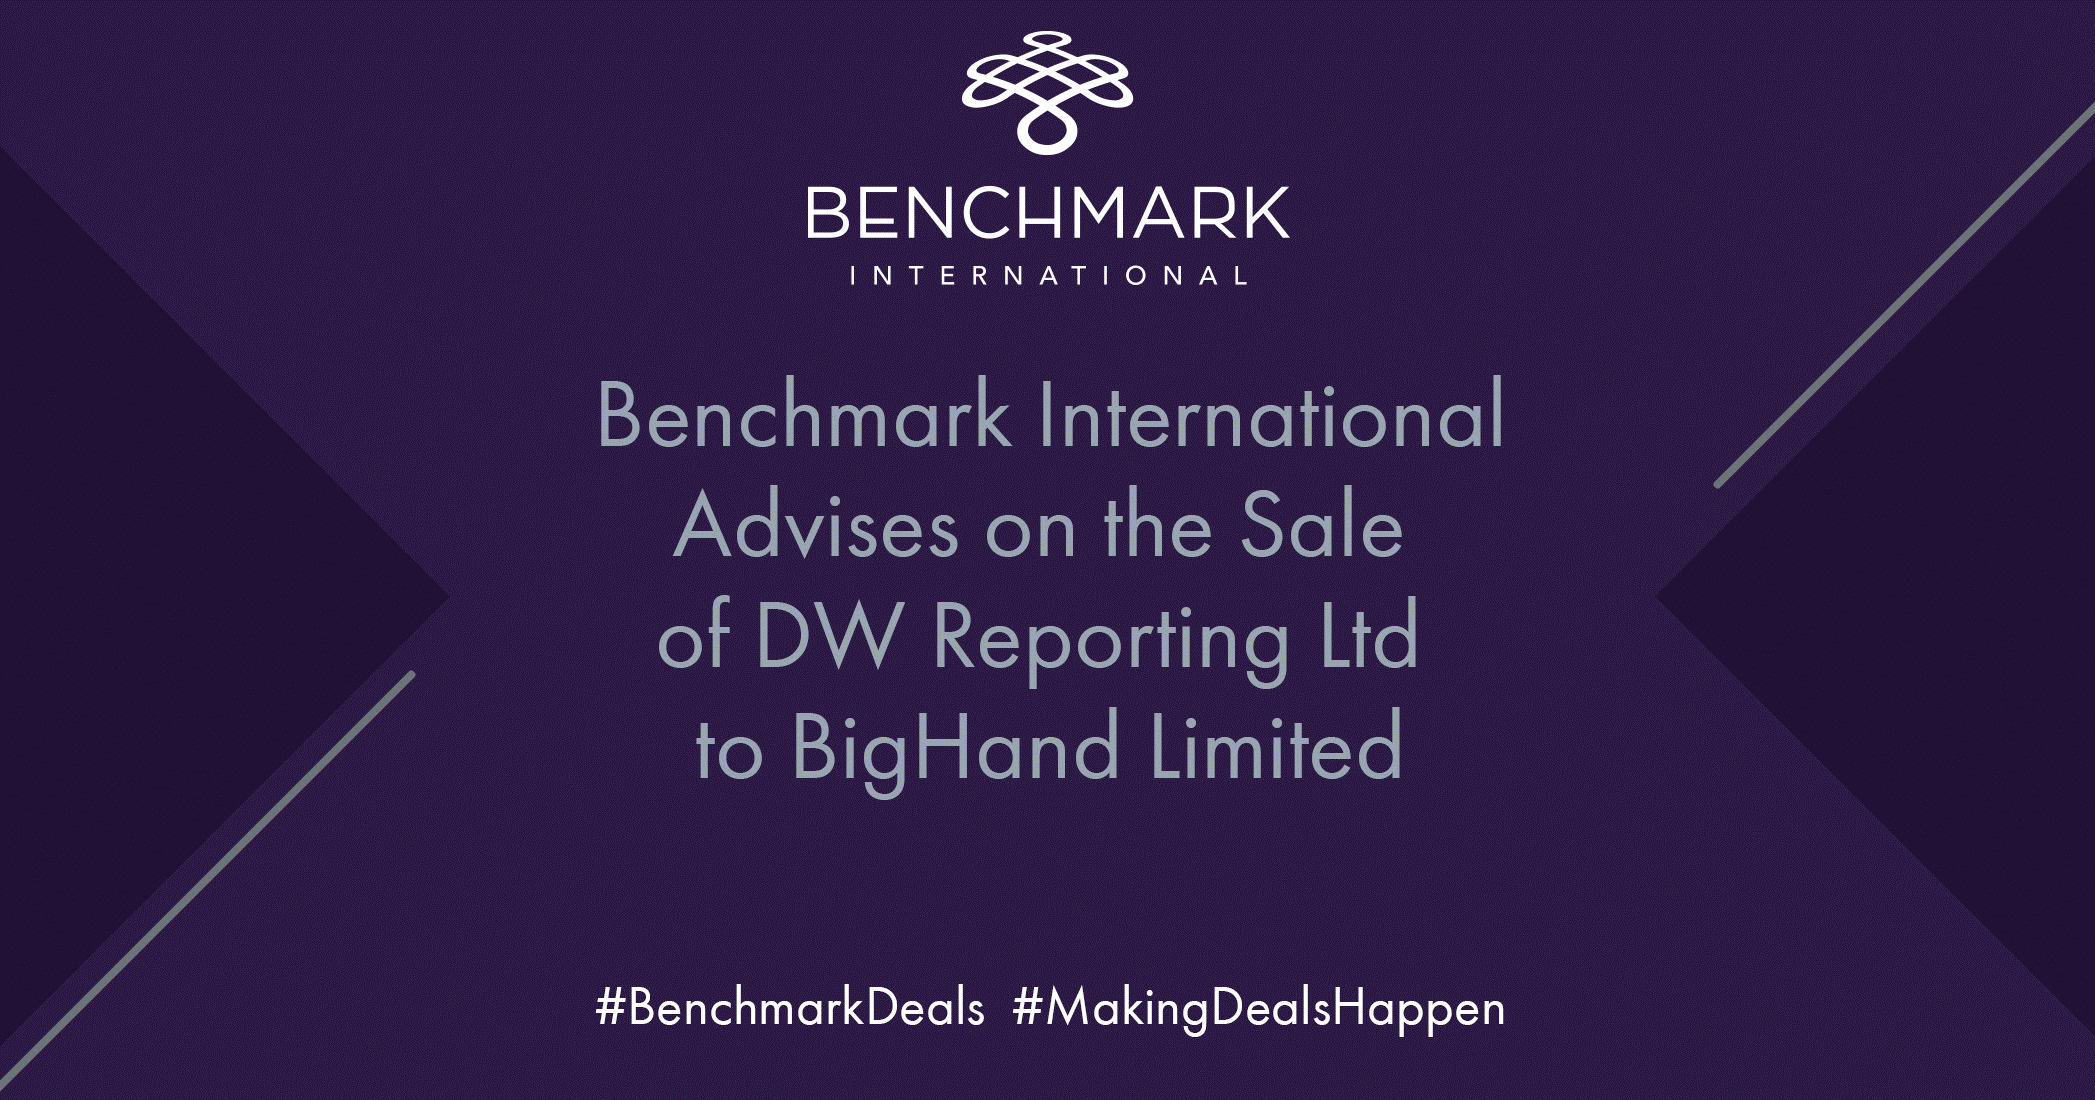 benchmark international advises on the sale of dw reporting ltd to